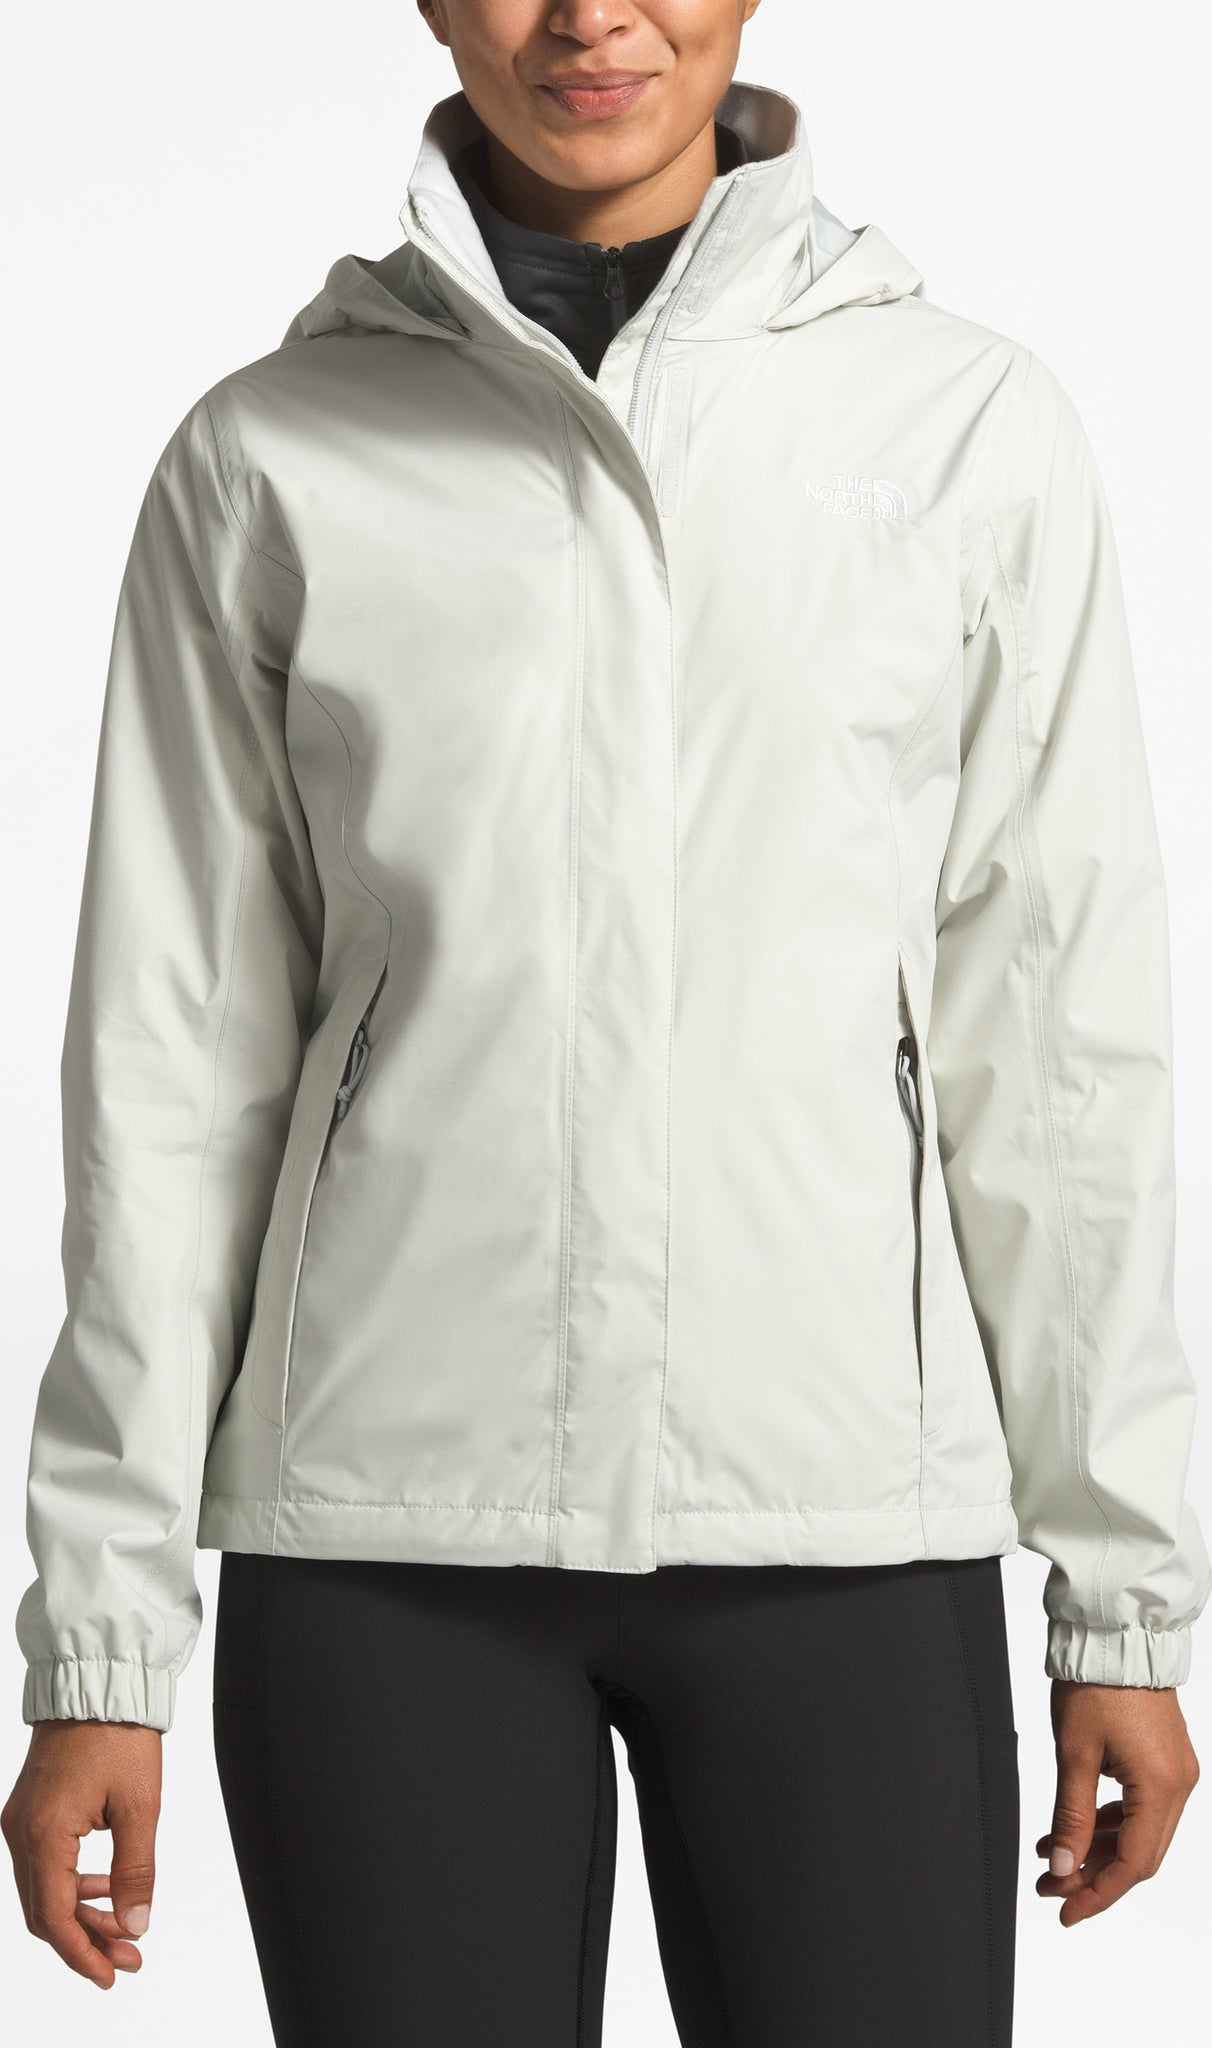 743b5b021 The North Face Resolve 2 Jacket - Women's   The Last Hunt